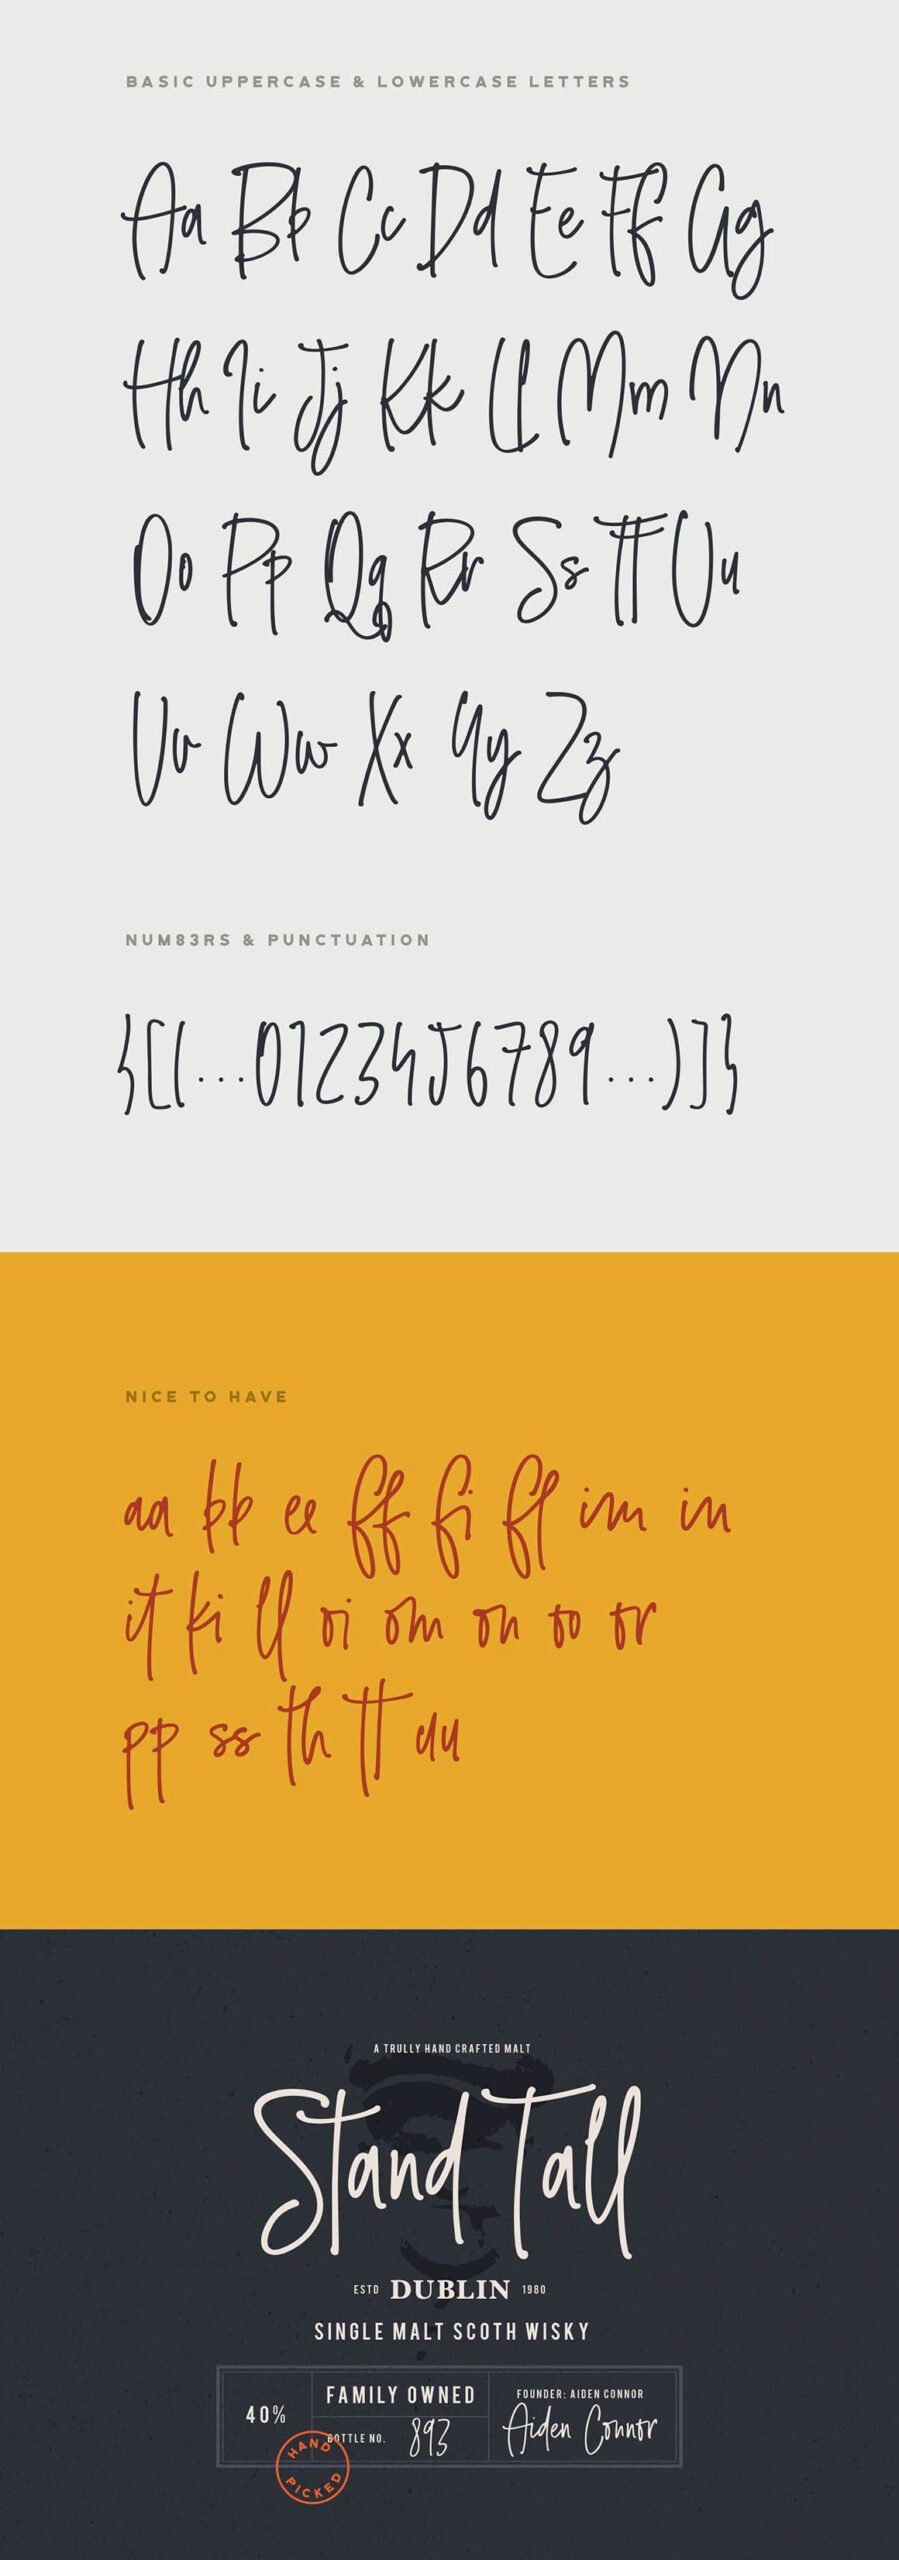 Smooth Stone - Free Font - Dealjumbo — Discounted Design